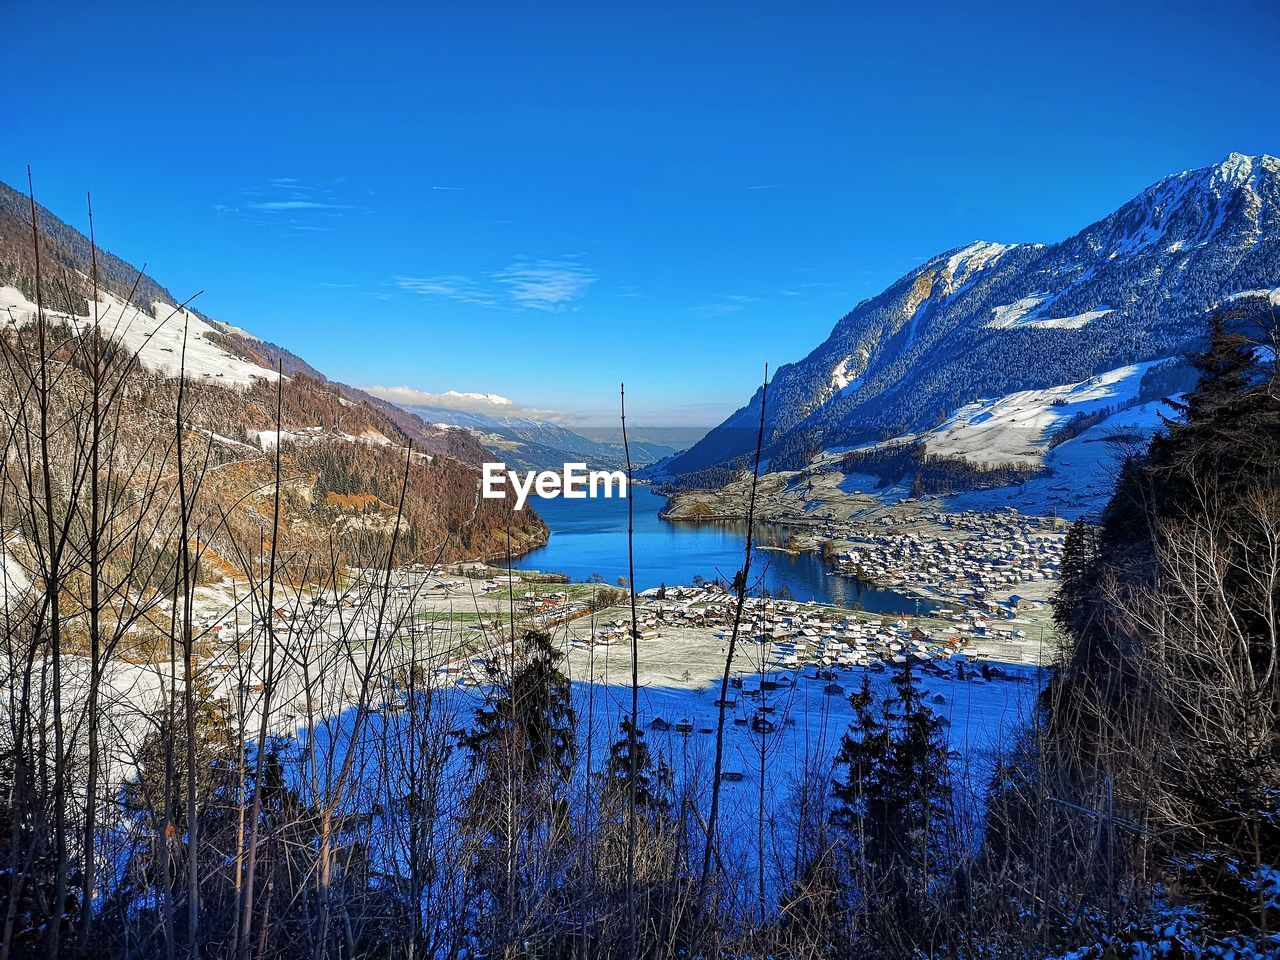 water, sky, mountain, blue, winter, beauty in nature, tranquil scene, scenics - nature, plant, cold temperature, snow, tranquility, nature, no people, lake, tree, mountain range, non-urban scene, reflection, outdoors, snowcapped mountain